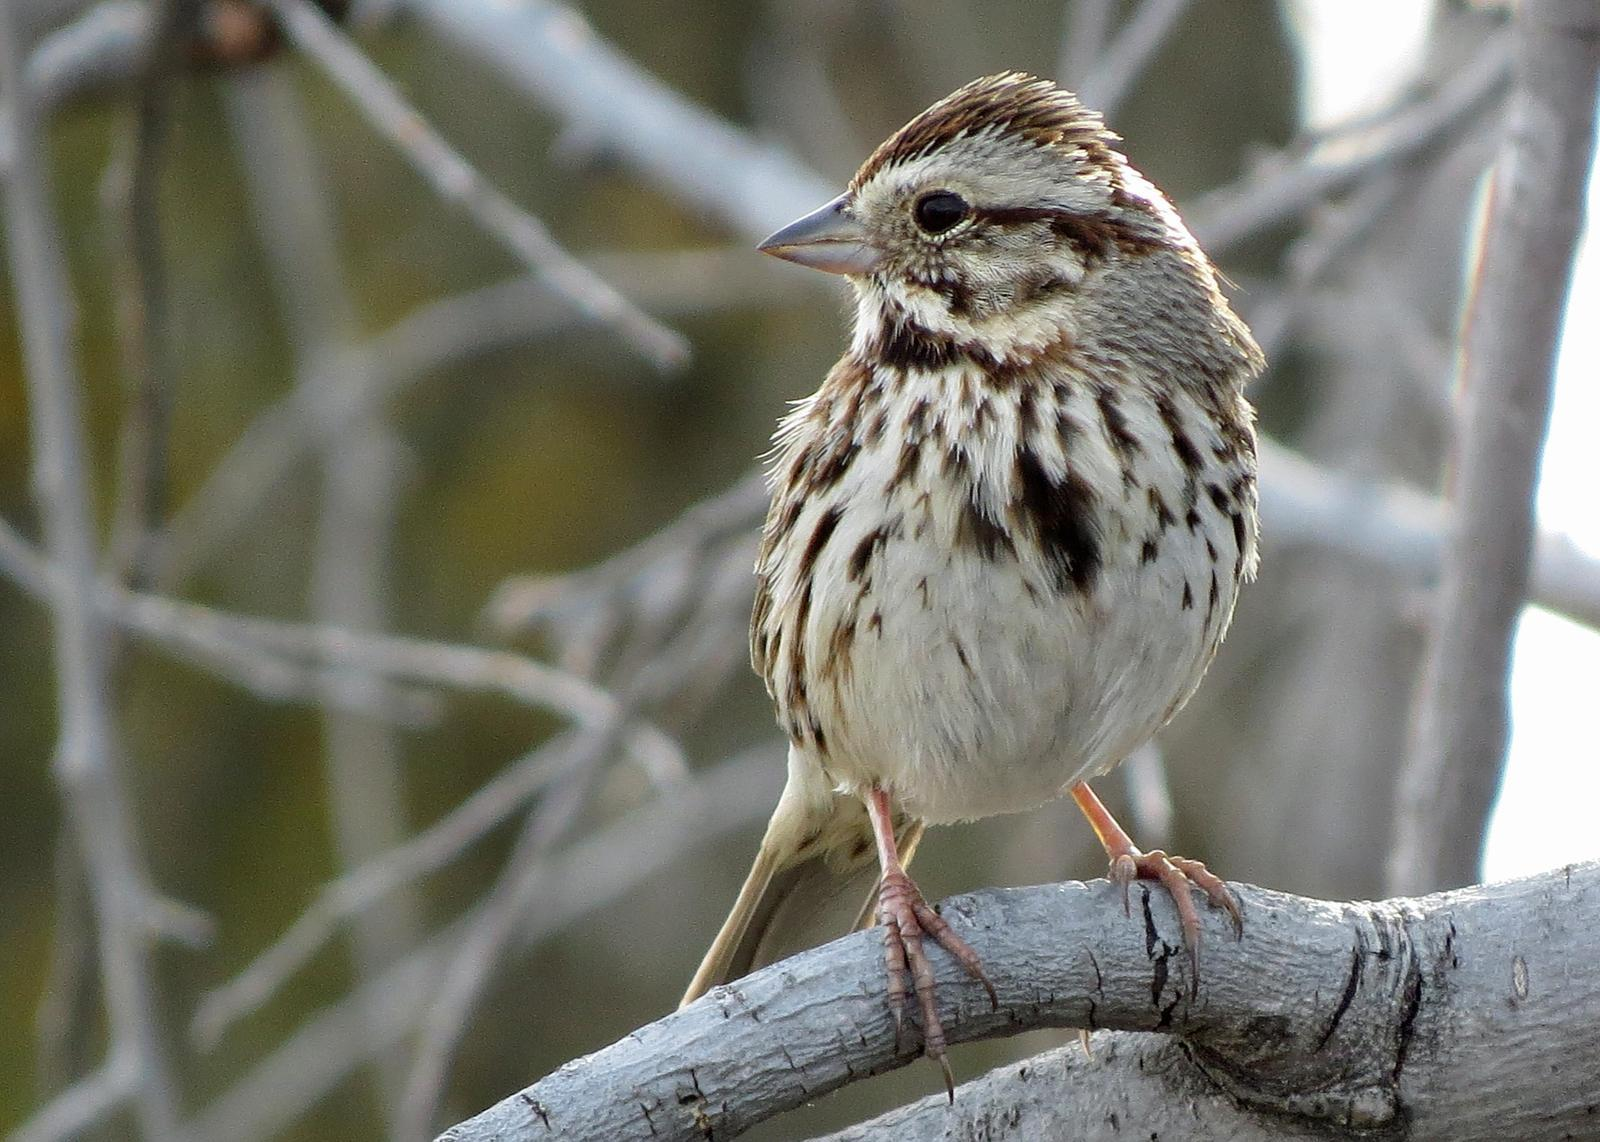 Song Sparrow Photo by Kelly Preheim